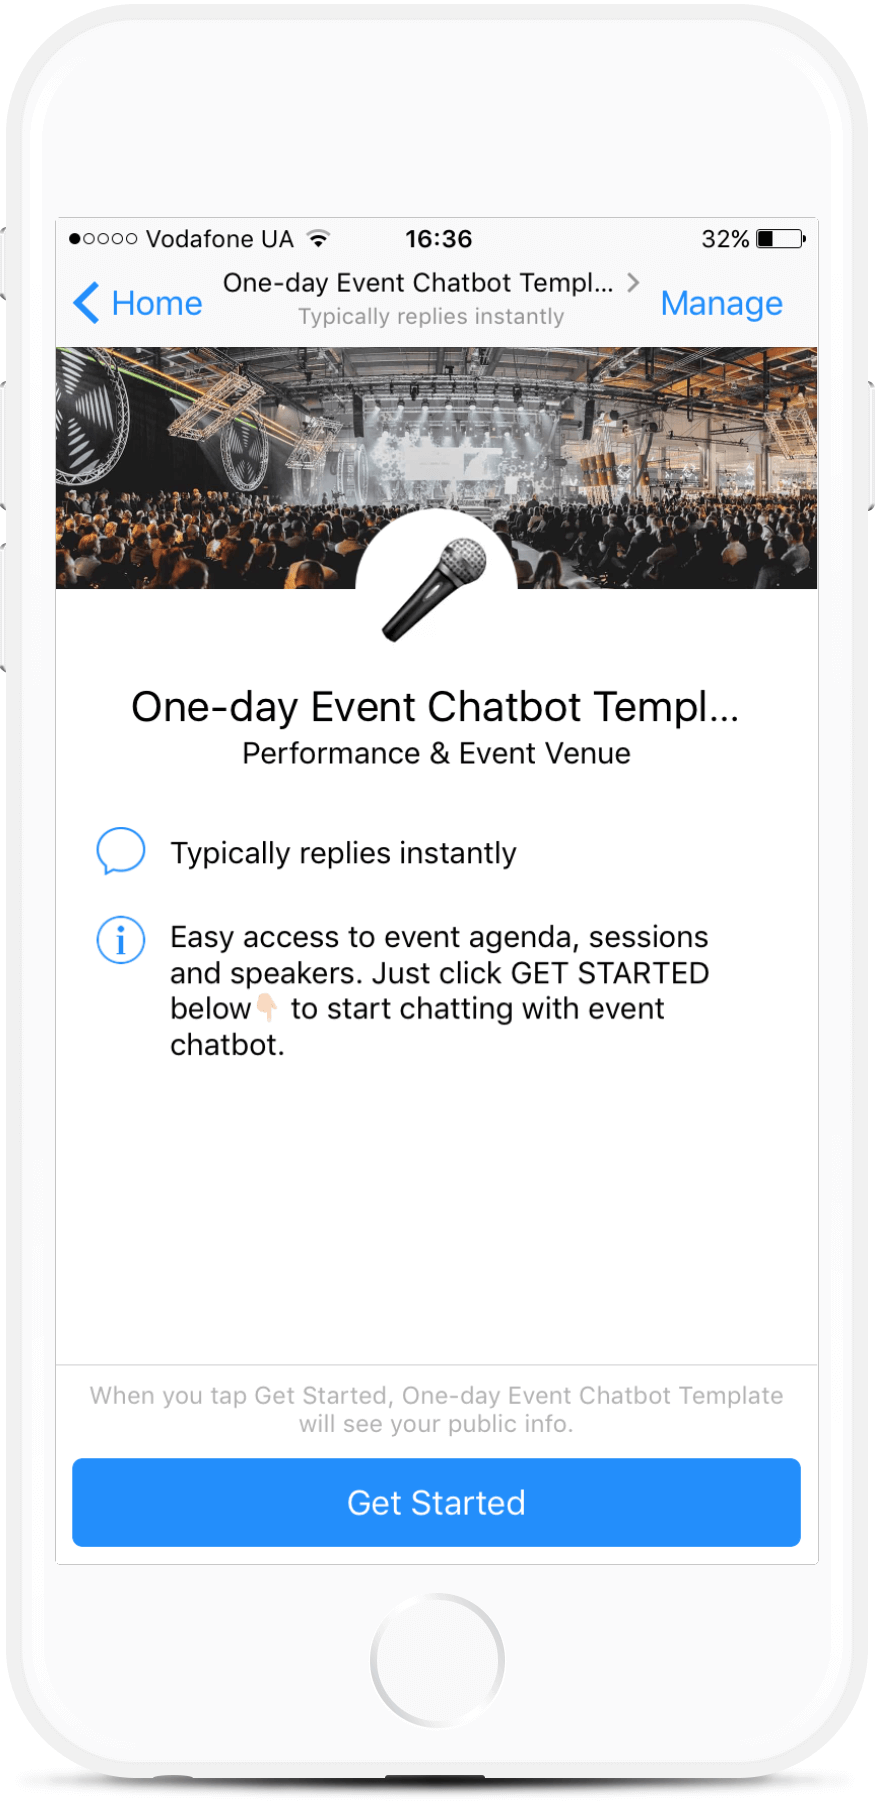 One-day Event Chatbot for Facebook Messenger